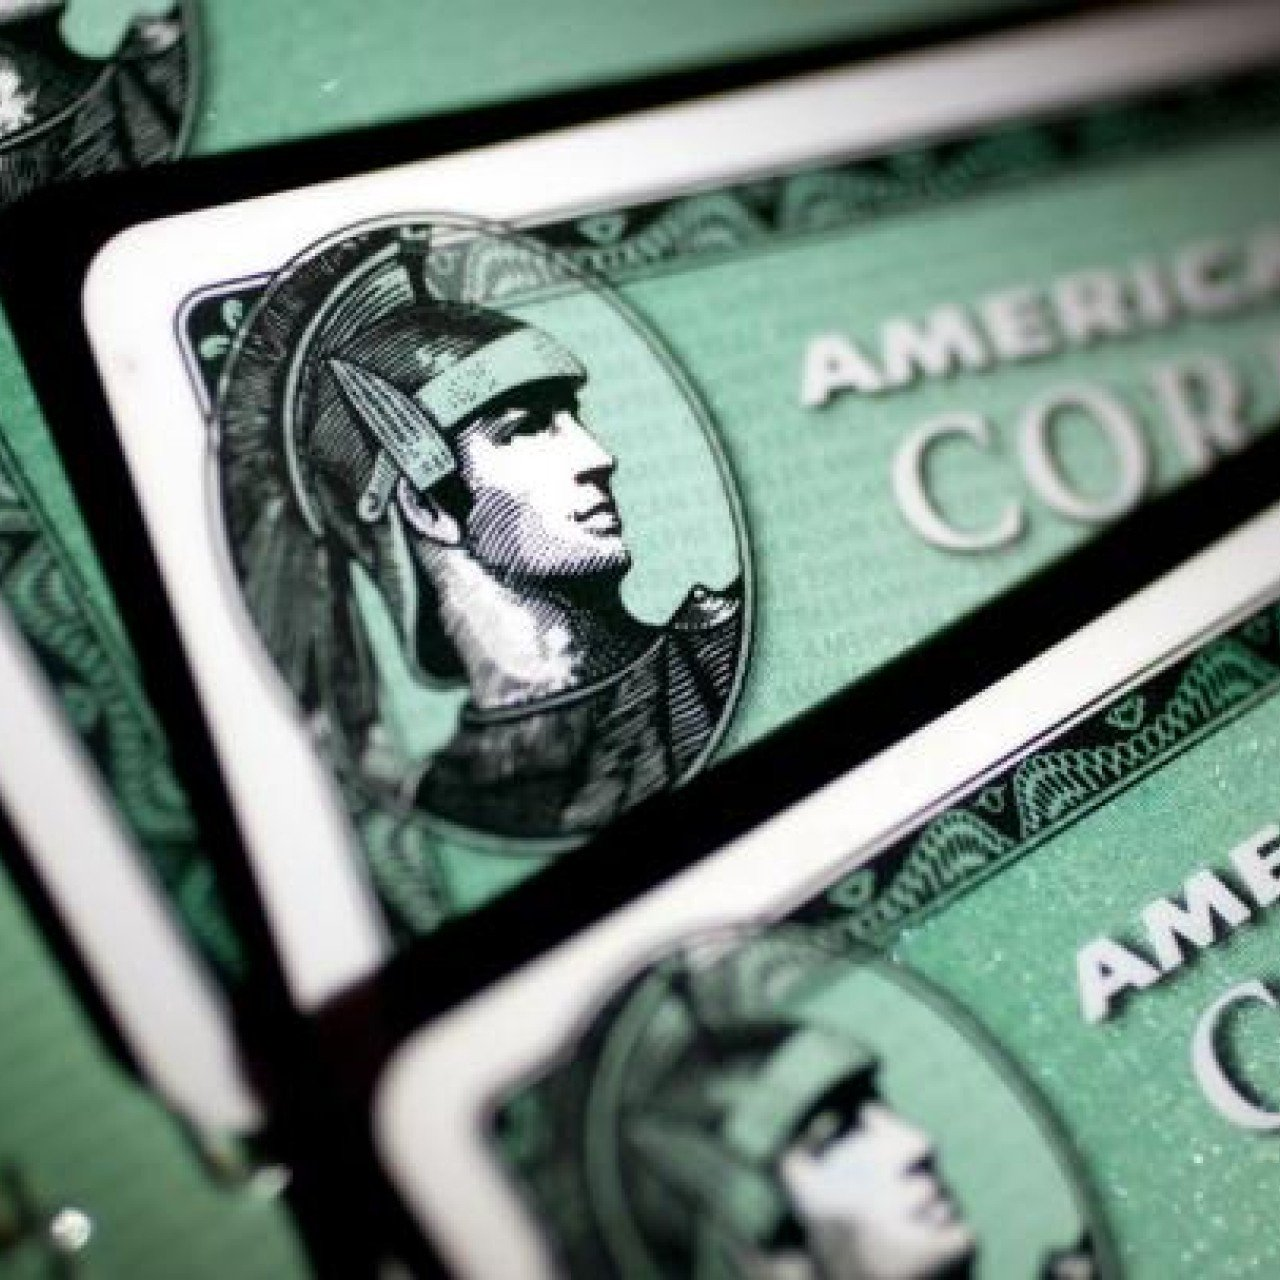 Amex cuts concierge service after review   South China